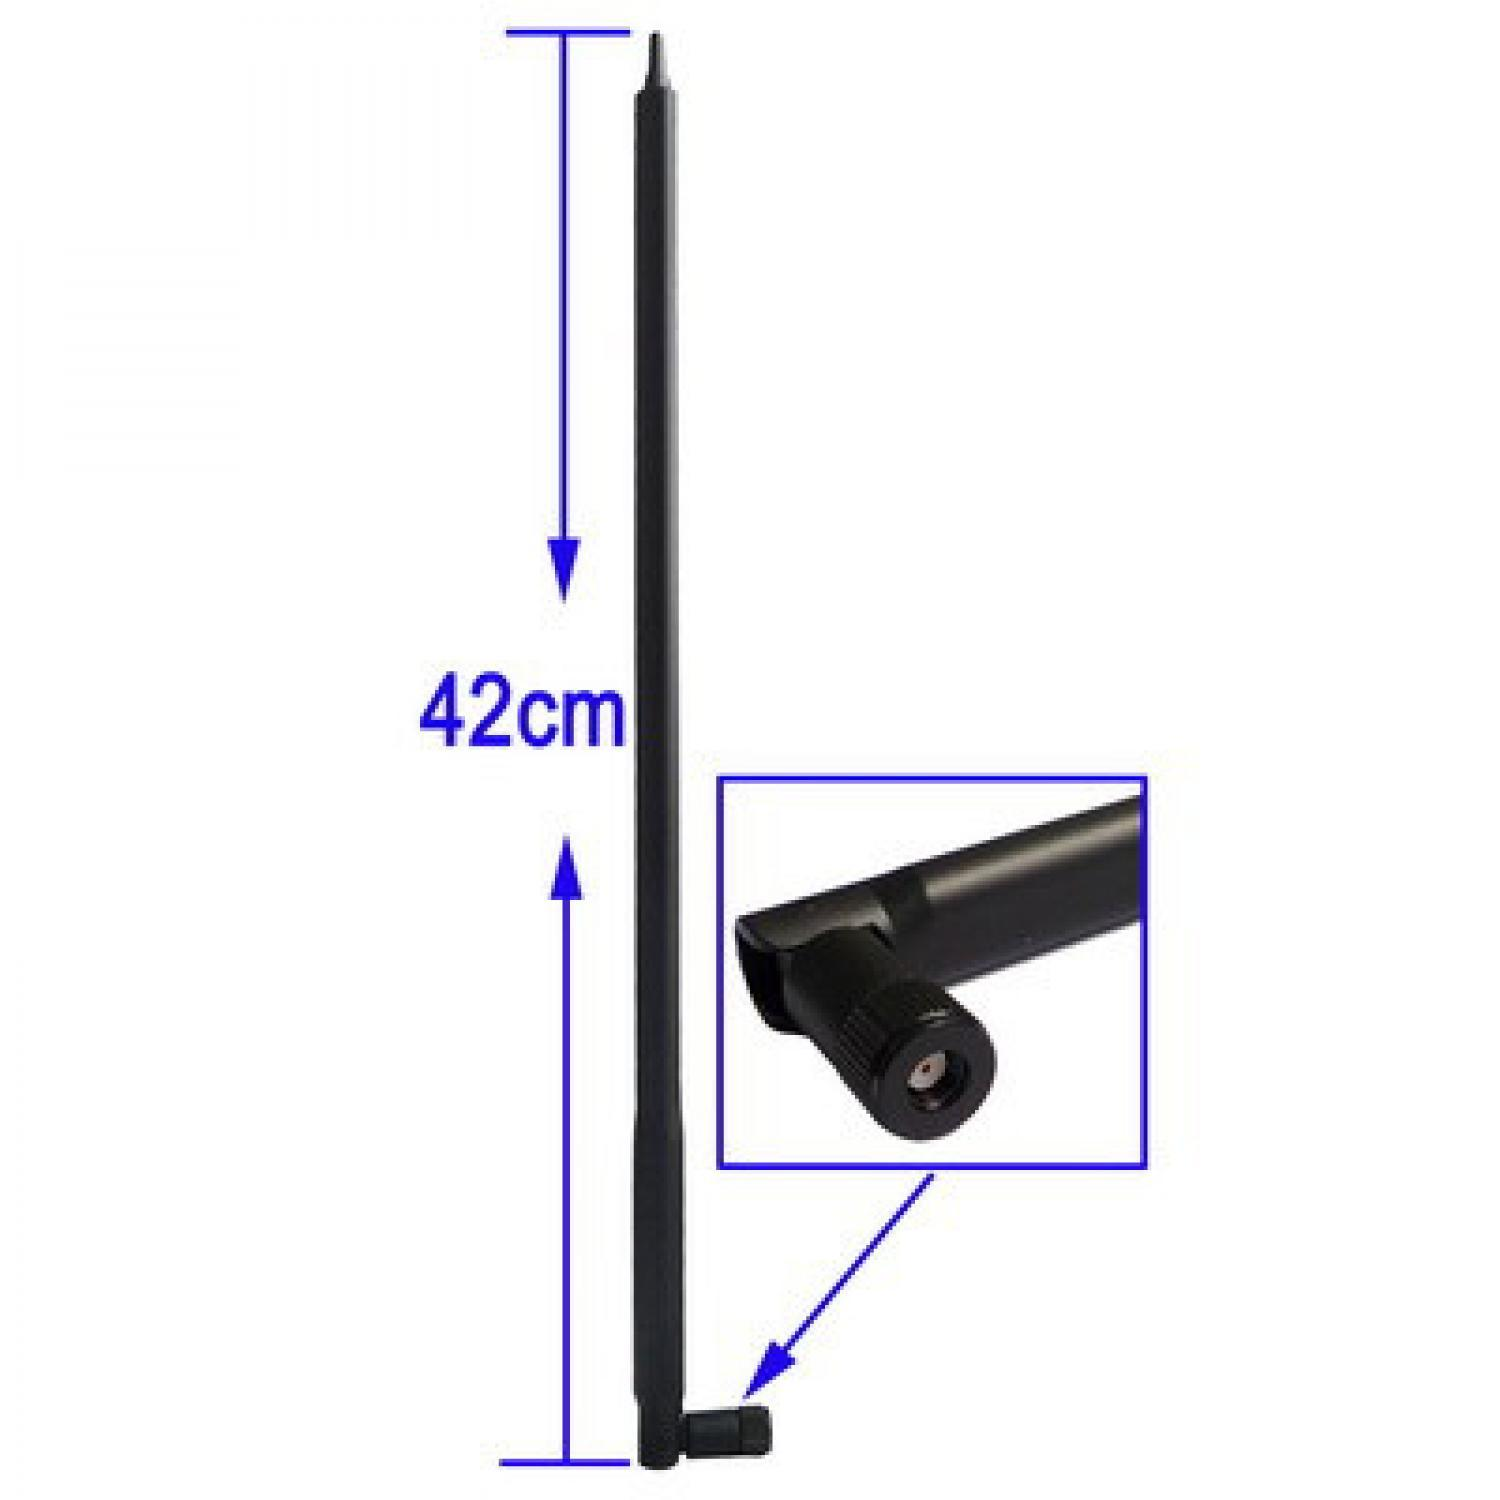 Kelebihan Hot Rp Sma 2 4ghz 7 Dbi Wireless Wifi Wlan Router 5 X Xiaomi Mi Home Repeater Pro Amplifier Extender 24g 300m Hitam Rimas Antenna For Network 24ghz 22dbi Antena